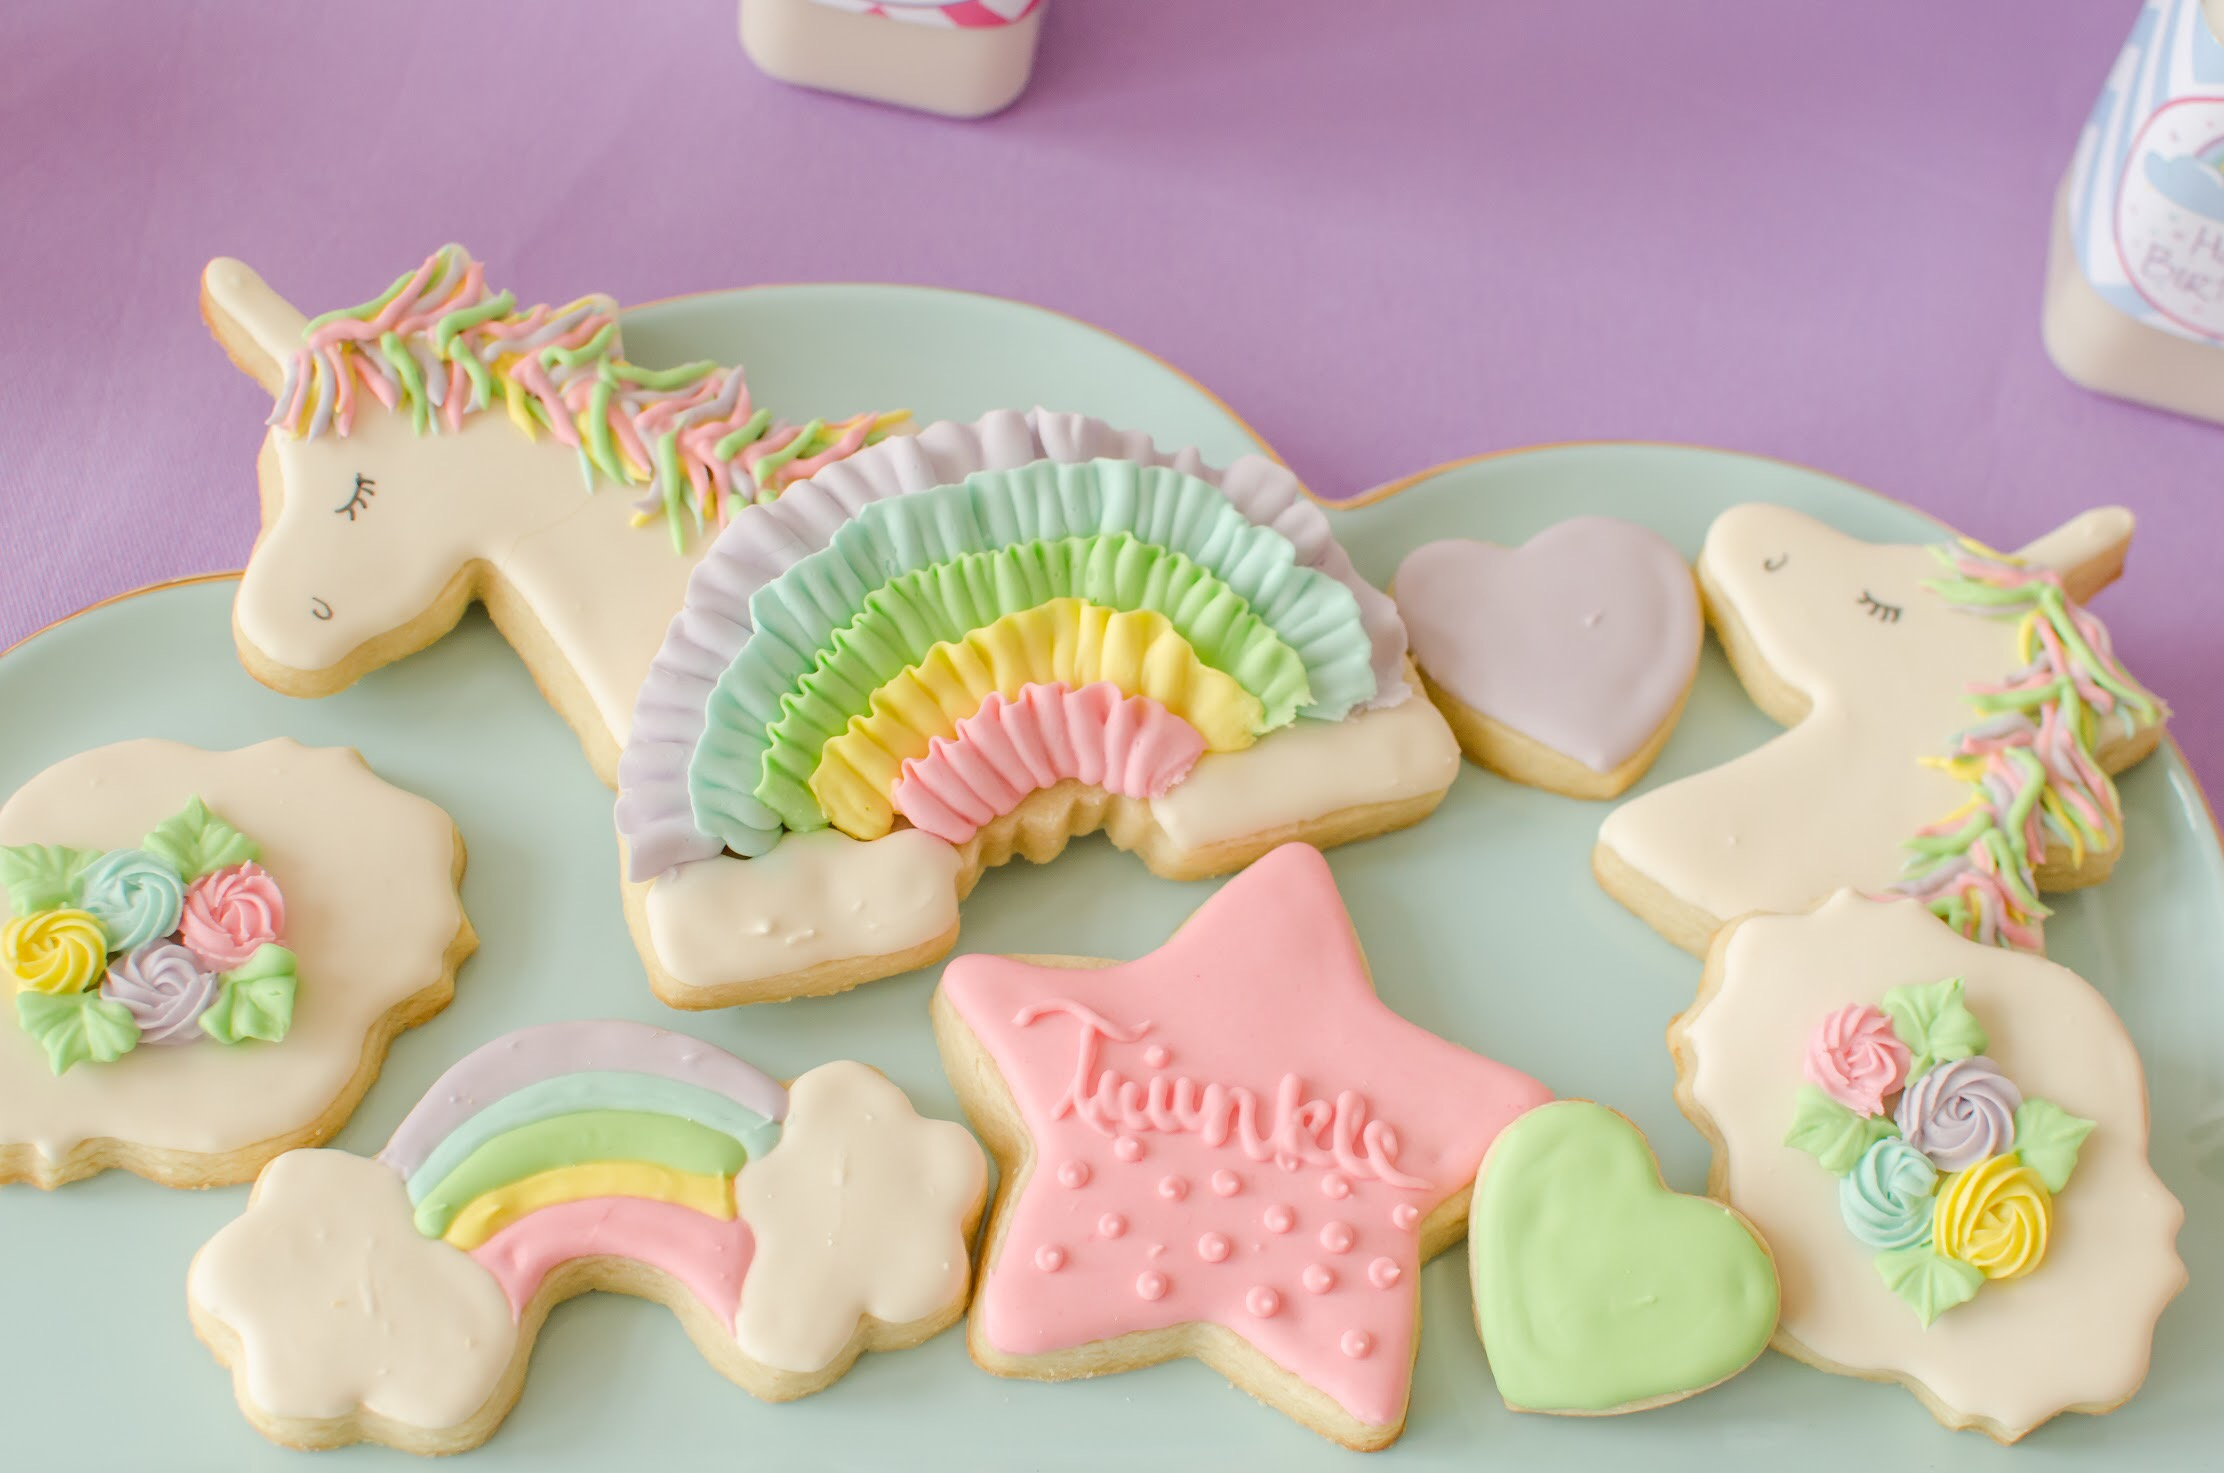 How sweet are these unicorn cookies? The whole party by Mint Event Design is amazing. See more at www.minteventdesign.com #unicornparty #sugarcookies #birthdayparty #birthdaypartyideas #pastelrainbow